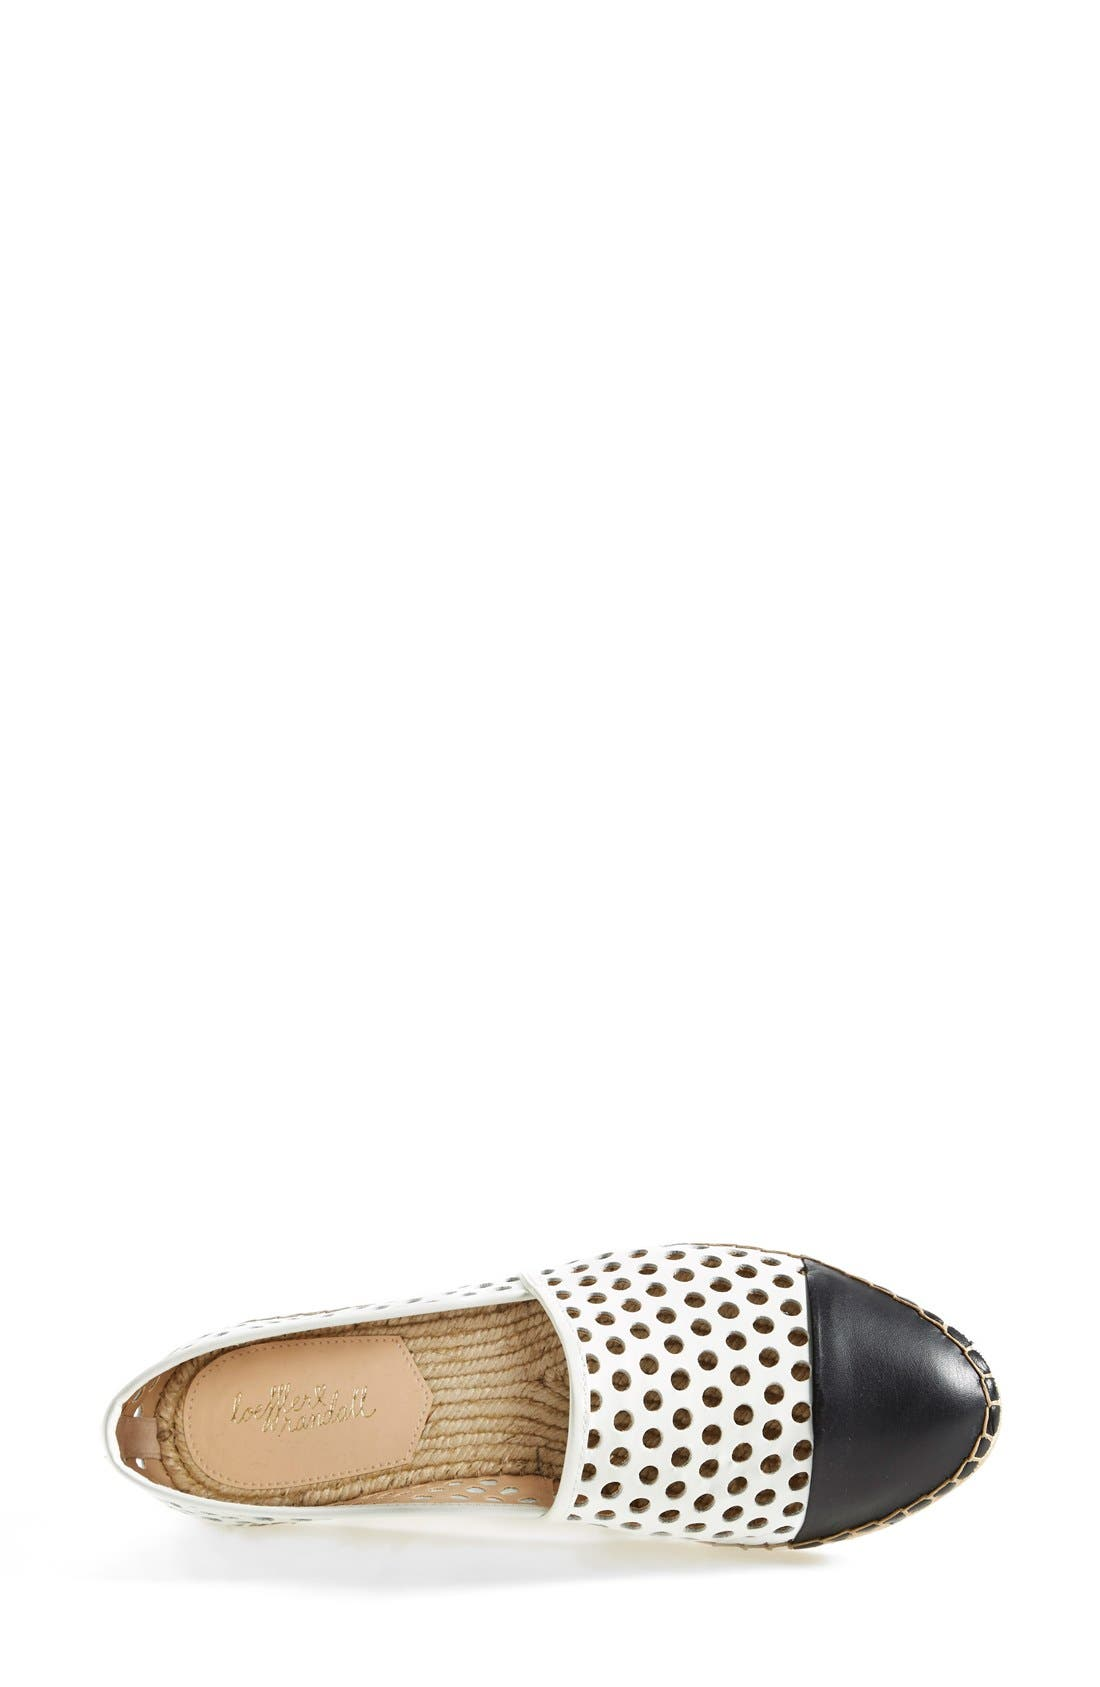 'Mara' Espadrille Flat,                             Alternate thumbnail 3, color,                             White/ Black